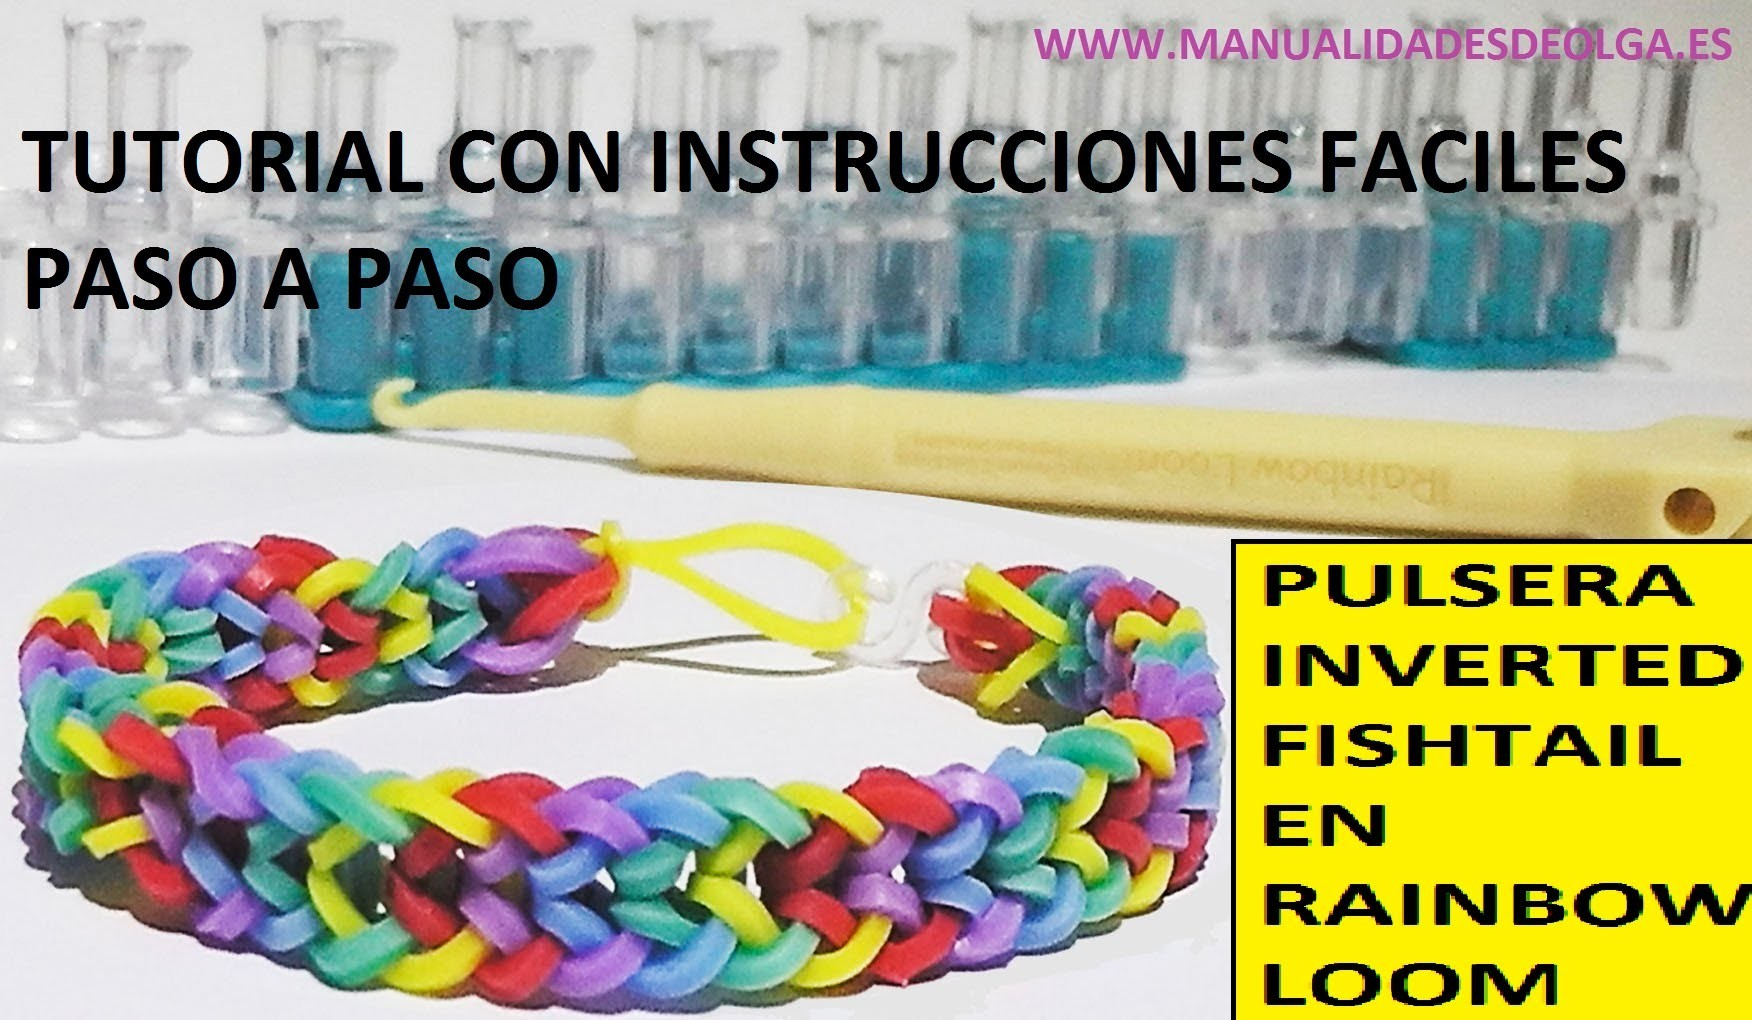 COMO HACER PULSERA DE GOMITAS INVERTED FISHTAIL EN TELAR RAINBOW LOOM. VIDEO TUTORIAL DIY